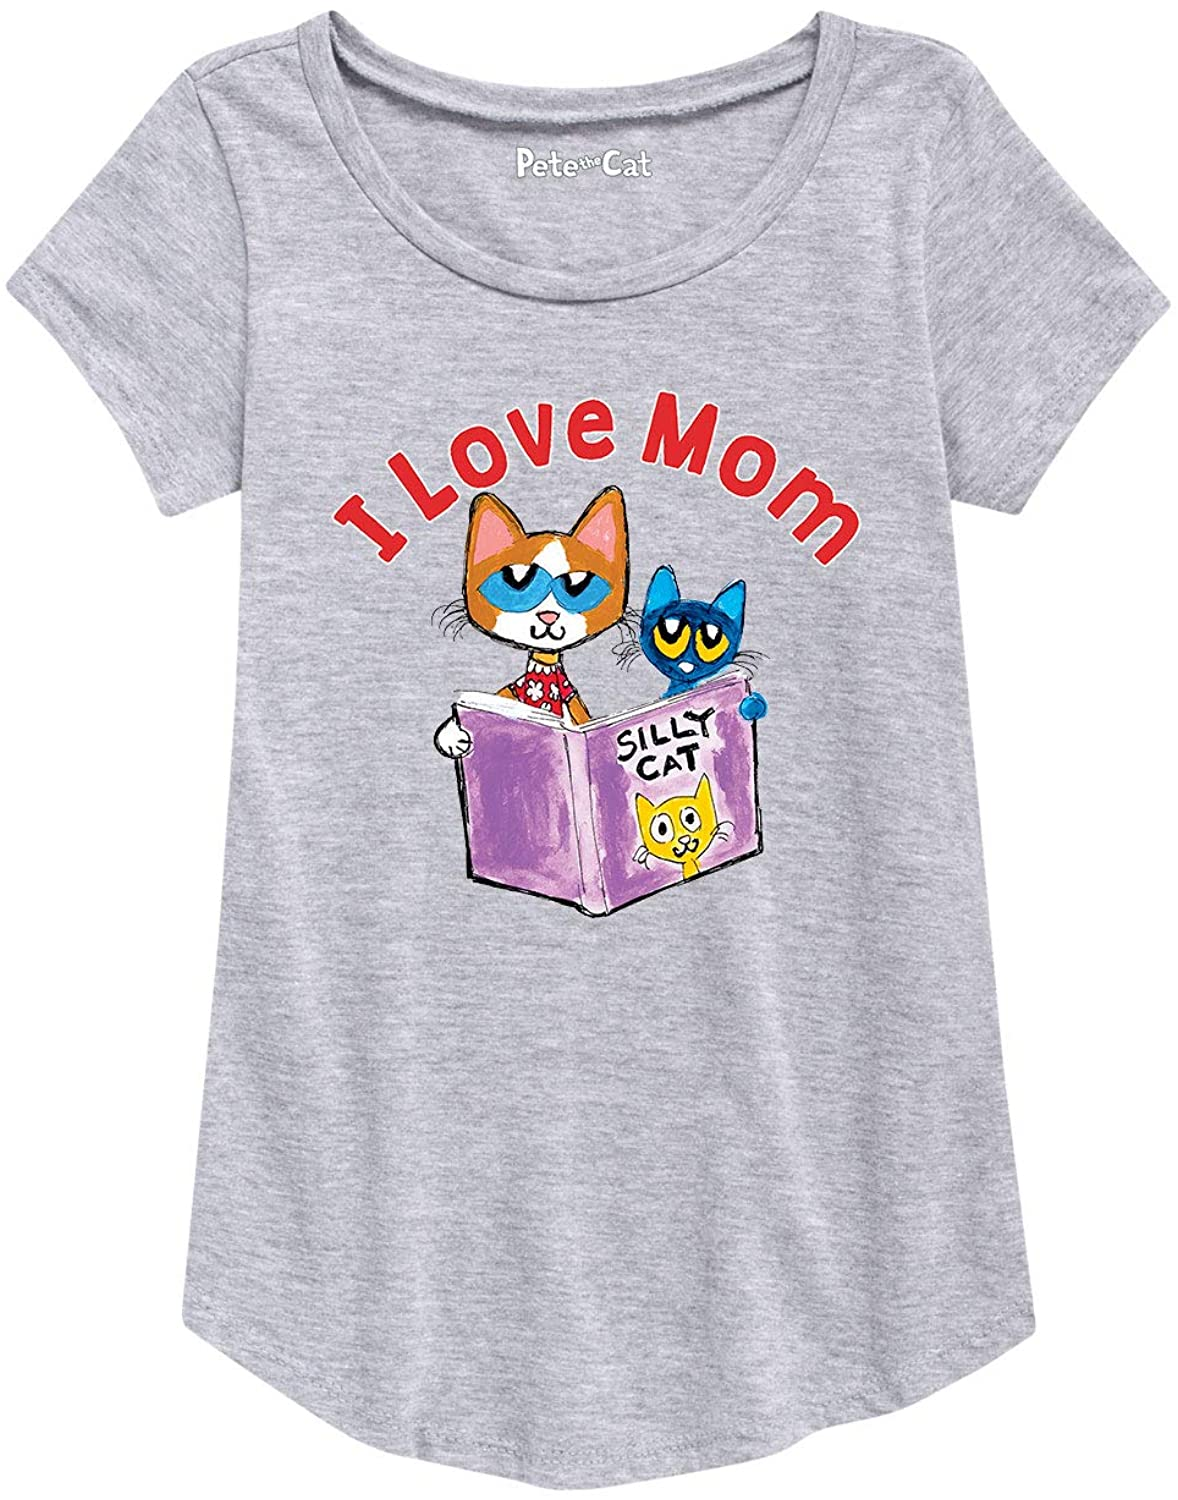 Pete The Cat Love Mom - Youth Girl Short Sleeve Curved Hem Tee